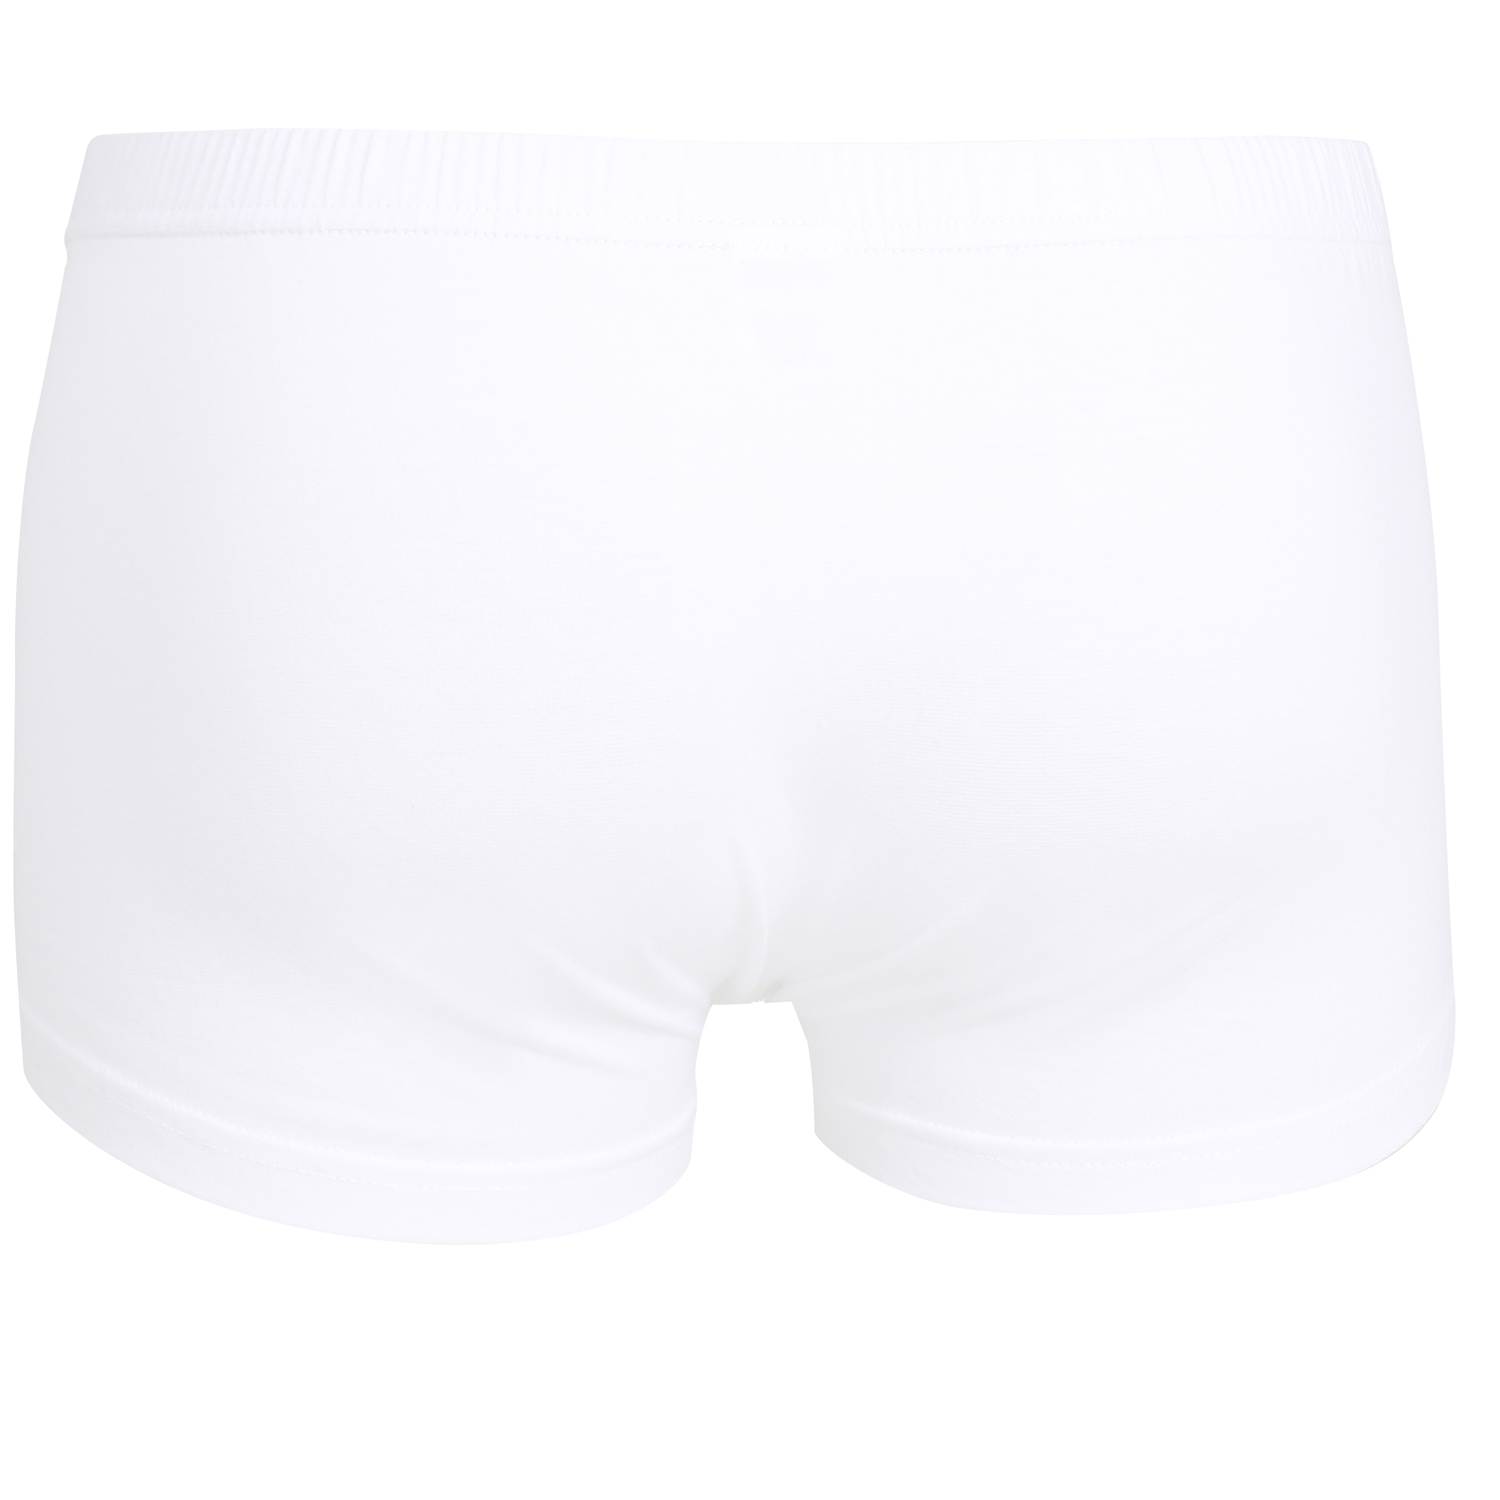 Detail Image to White pants double pack by Ceceba in oversizes up to 18